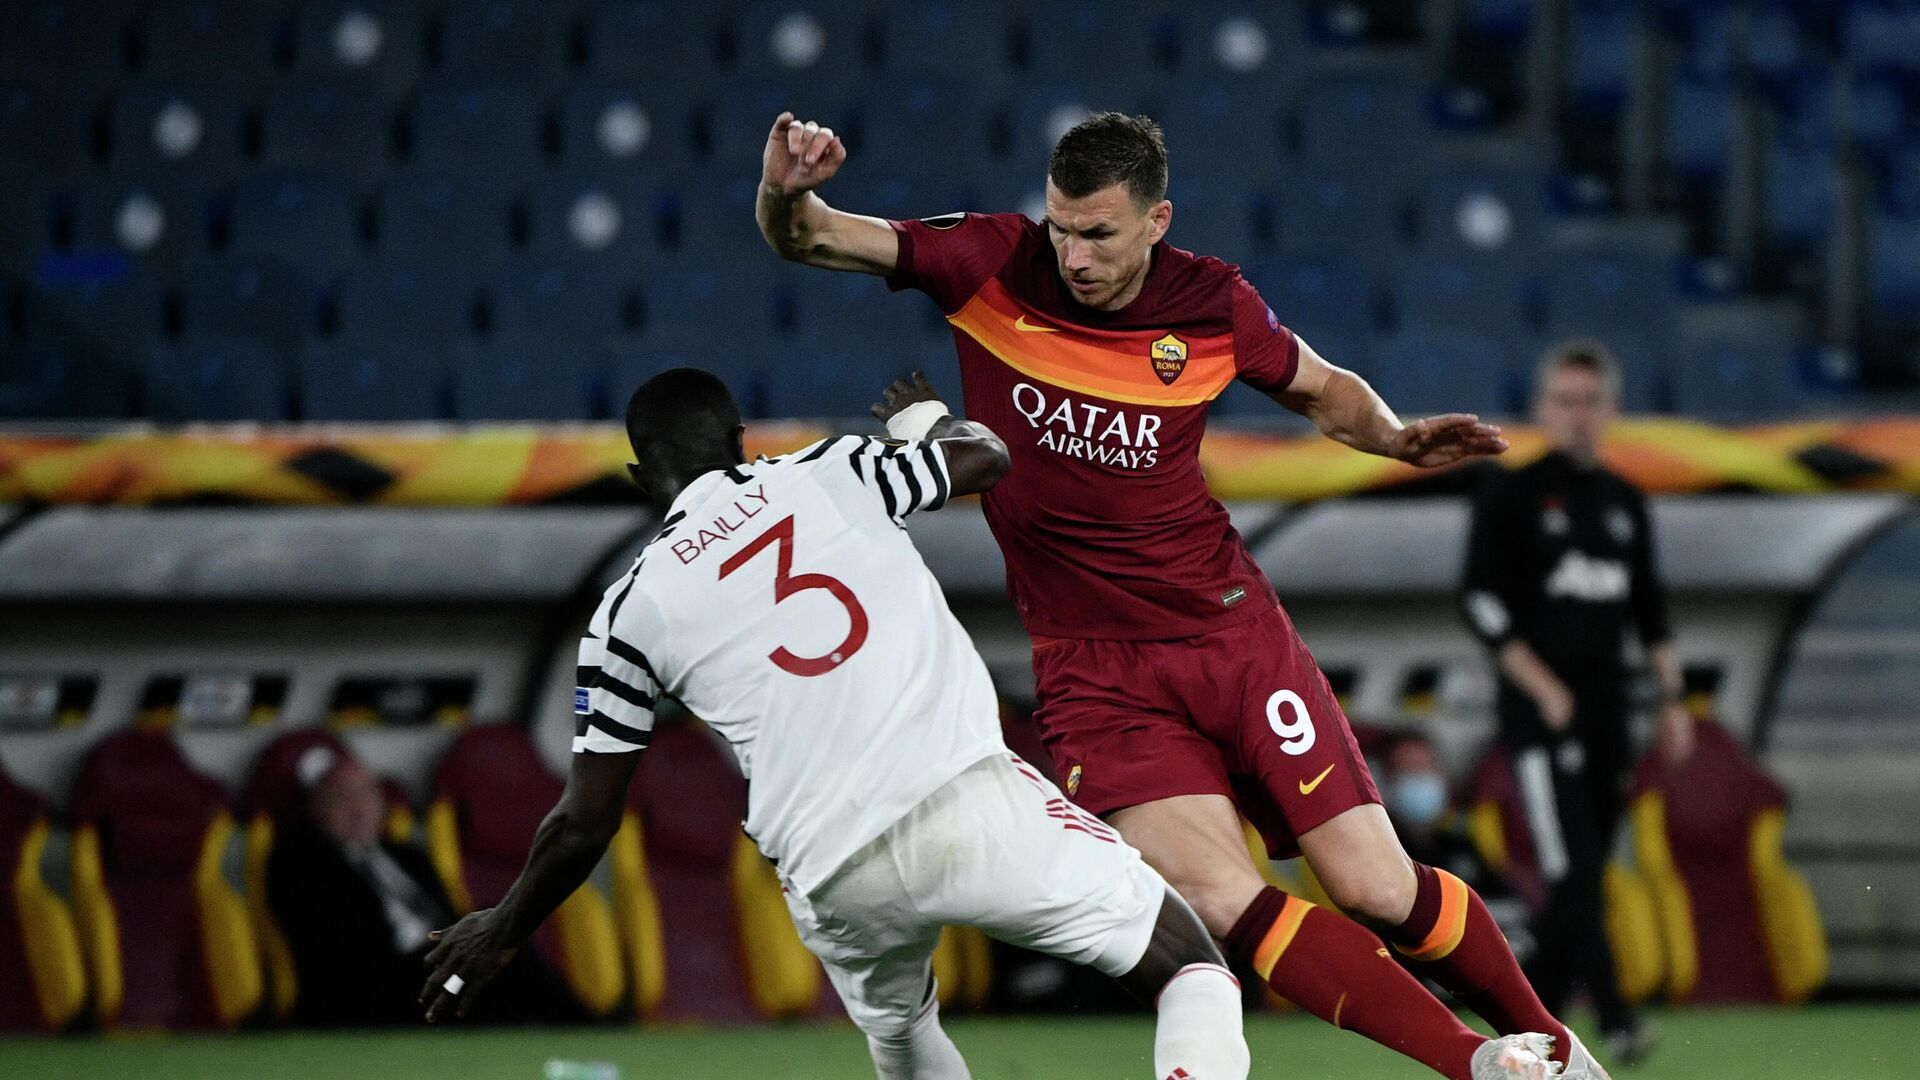 Roma's Bosnian forward Edin Dzeko (R) fights for the ball with Manchester United's Ivorian defender Eric Bailly during the UEFA Europa League semi-final second leg football match between AS Roma and Manchester United at the Olympic Stadium in Rome, on May 6, 2021. (Photo by Filippo MONTEFORTE / AFP) - РИА Новости, 1920, 06.05.2021